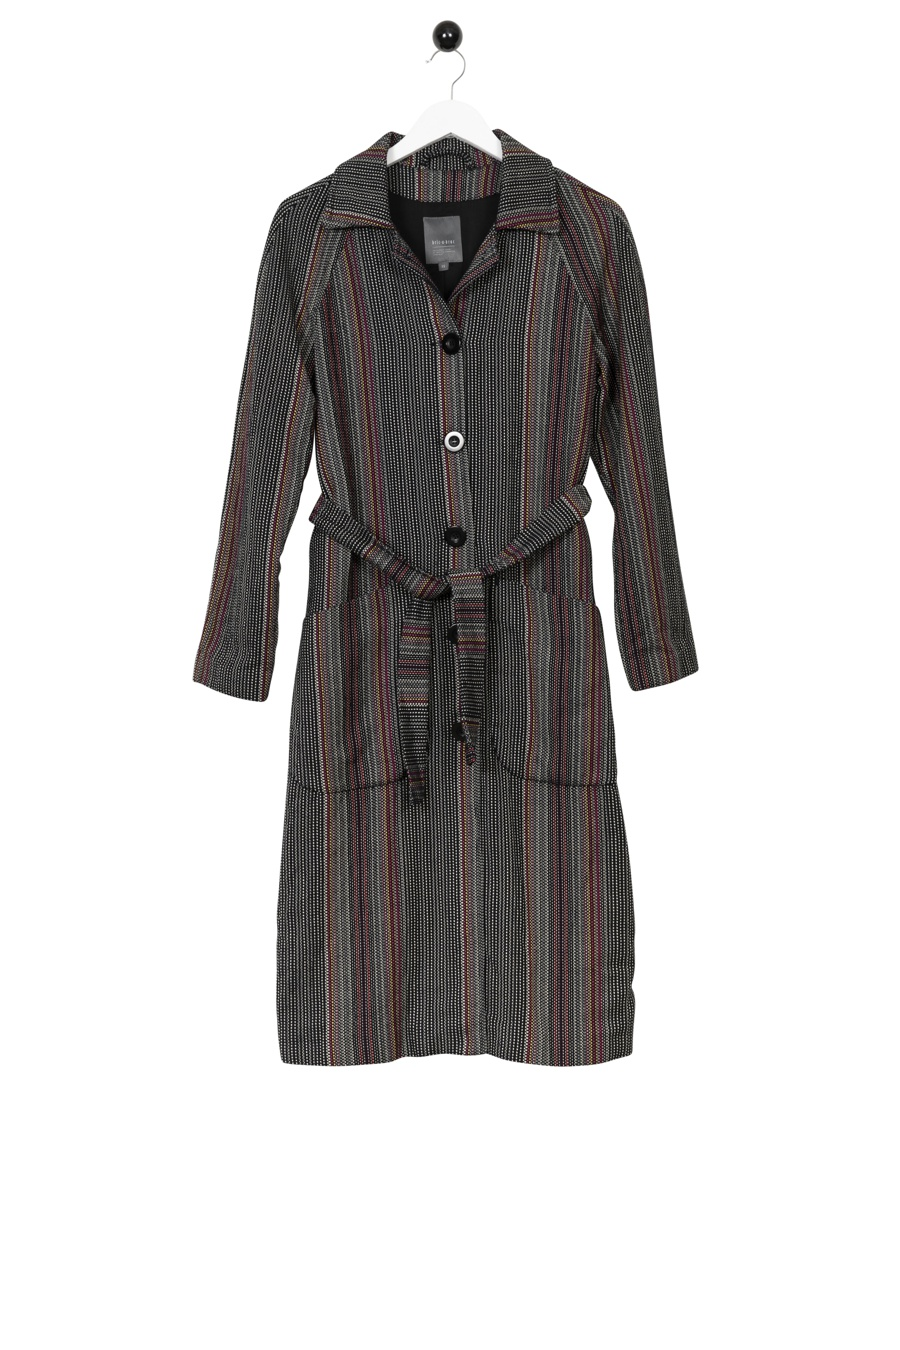 Grenoble Coat